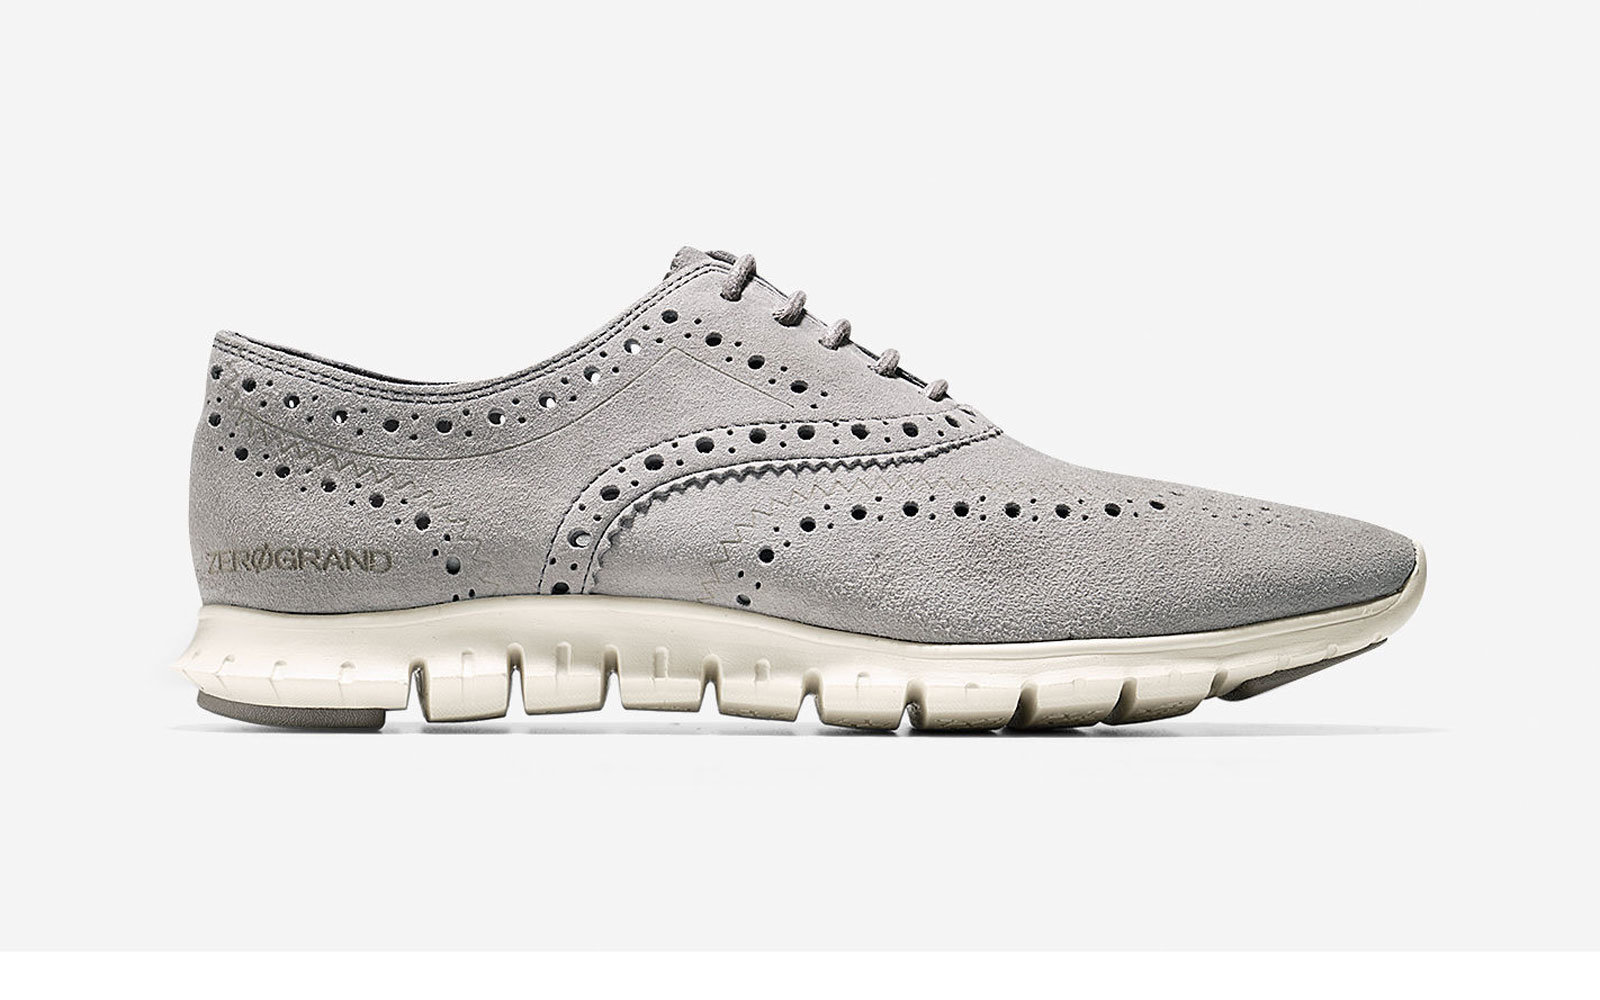 Best Walking Shoes for Travel: Cole Haan